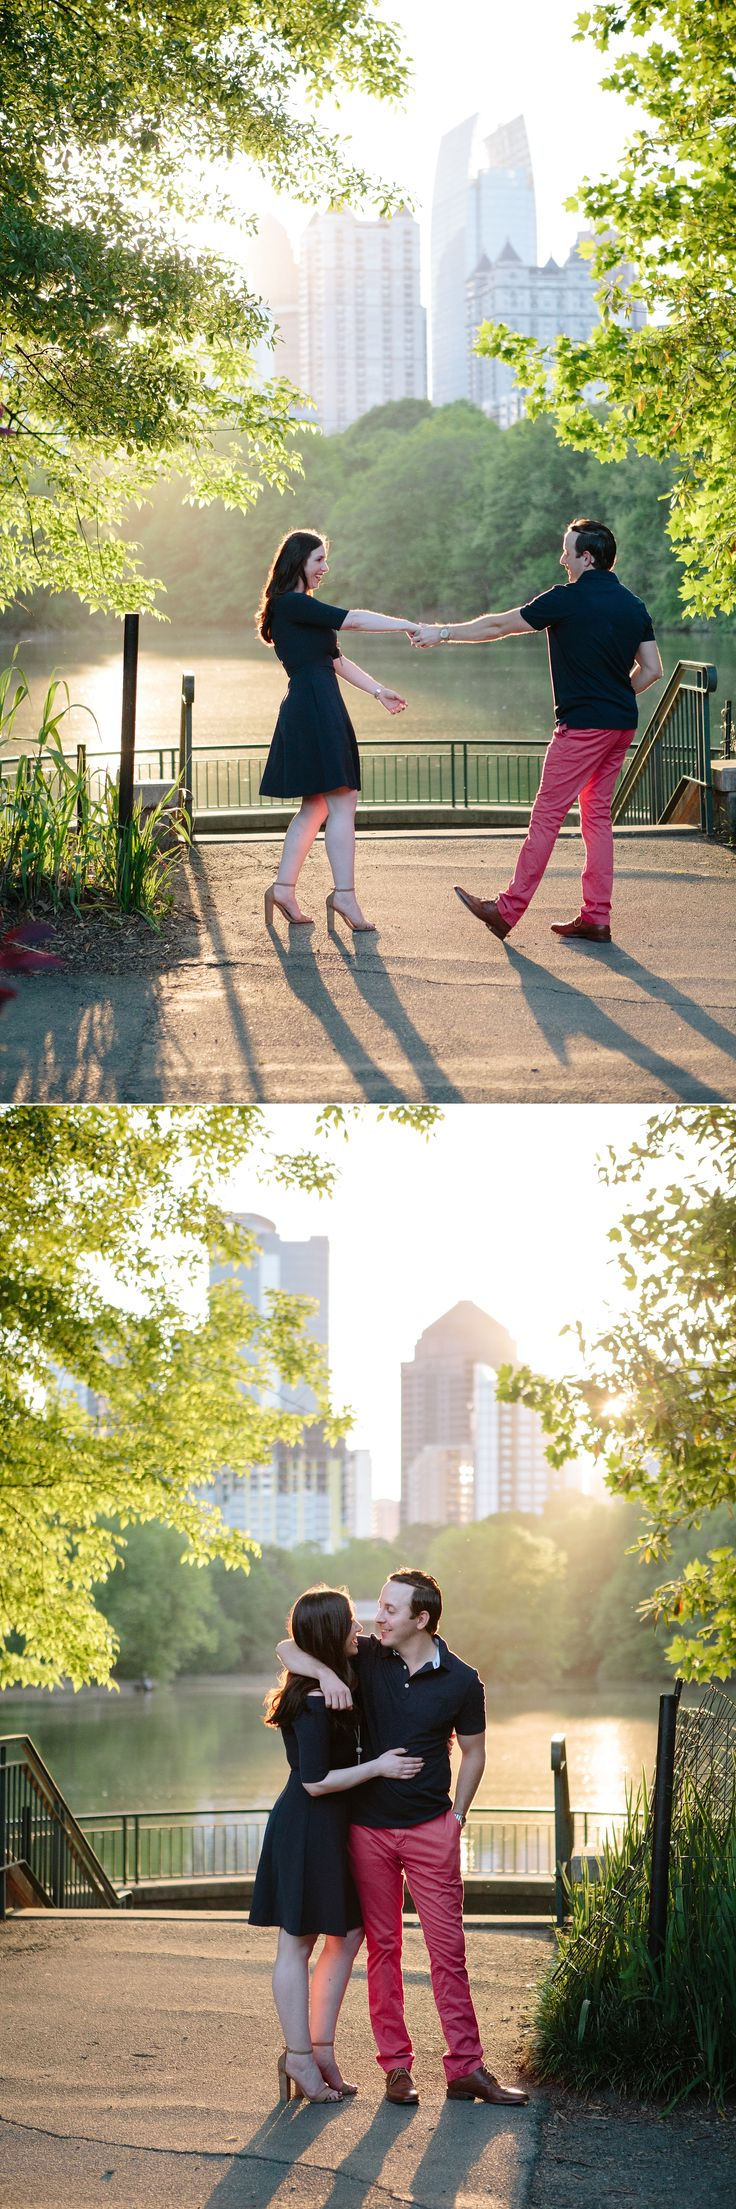 Piedmont Park Engagement Photos by Top Atlanta Photographers Leigh and Becca